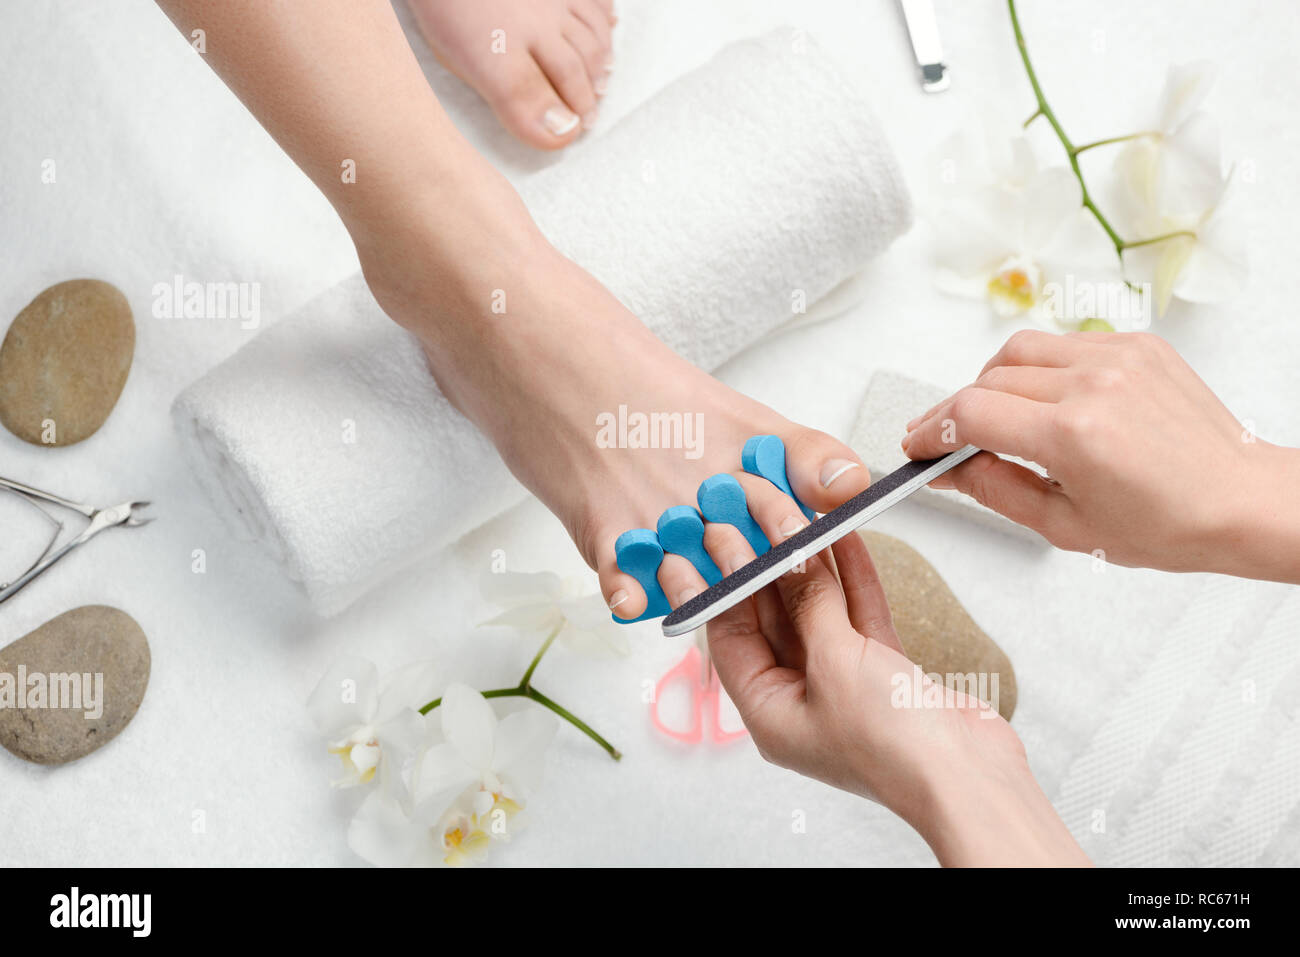 Pedicurist shaping toe nails - Stock Image